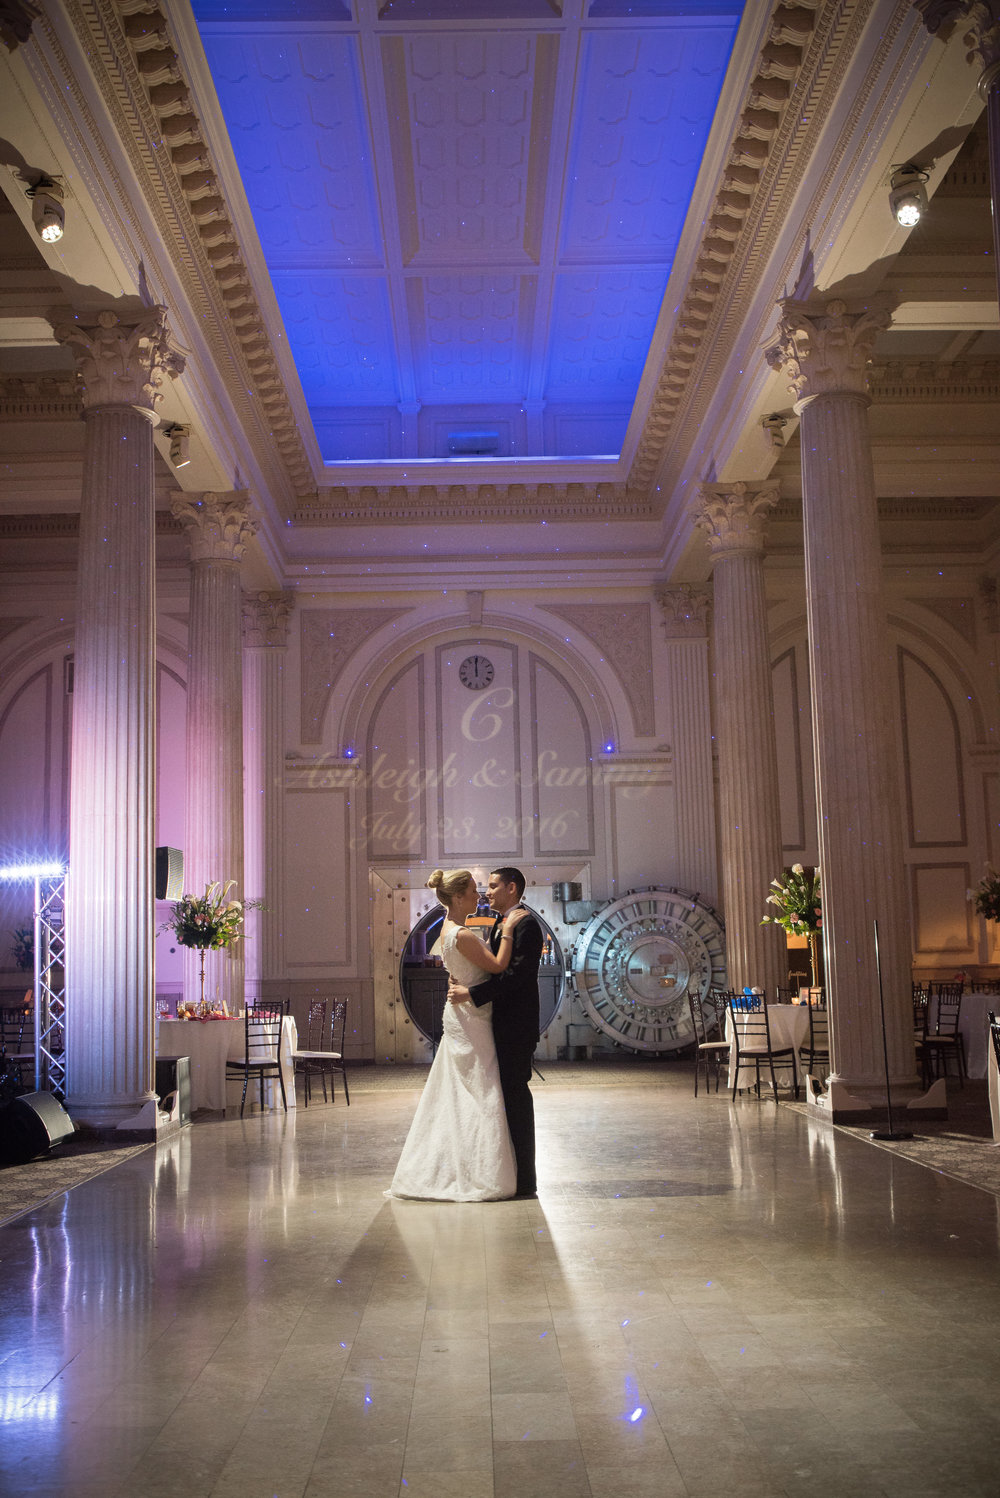 A crown jewel of Saint Augustine, Treasury on the Plaza is the perfect wedding backdrop